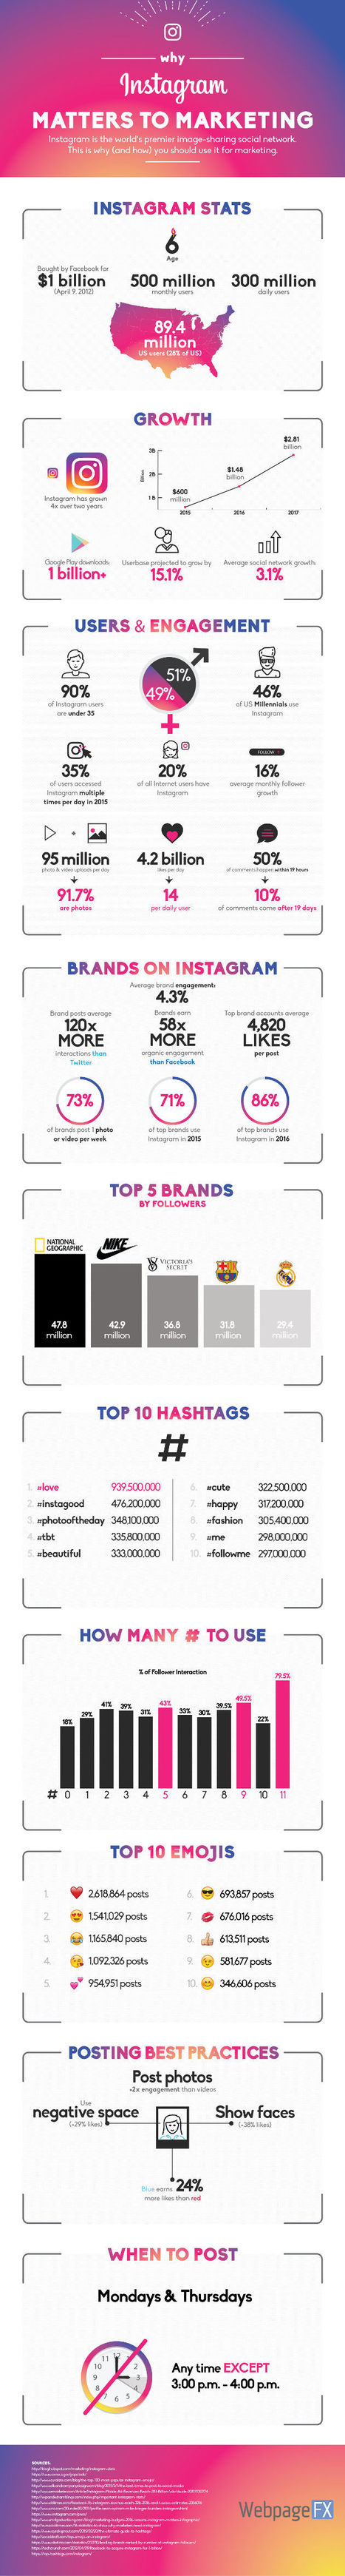 Why Instagram Matters to Marketing [Infographic] - Profs | The MarTech Digest | Scoop.it